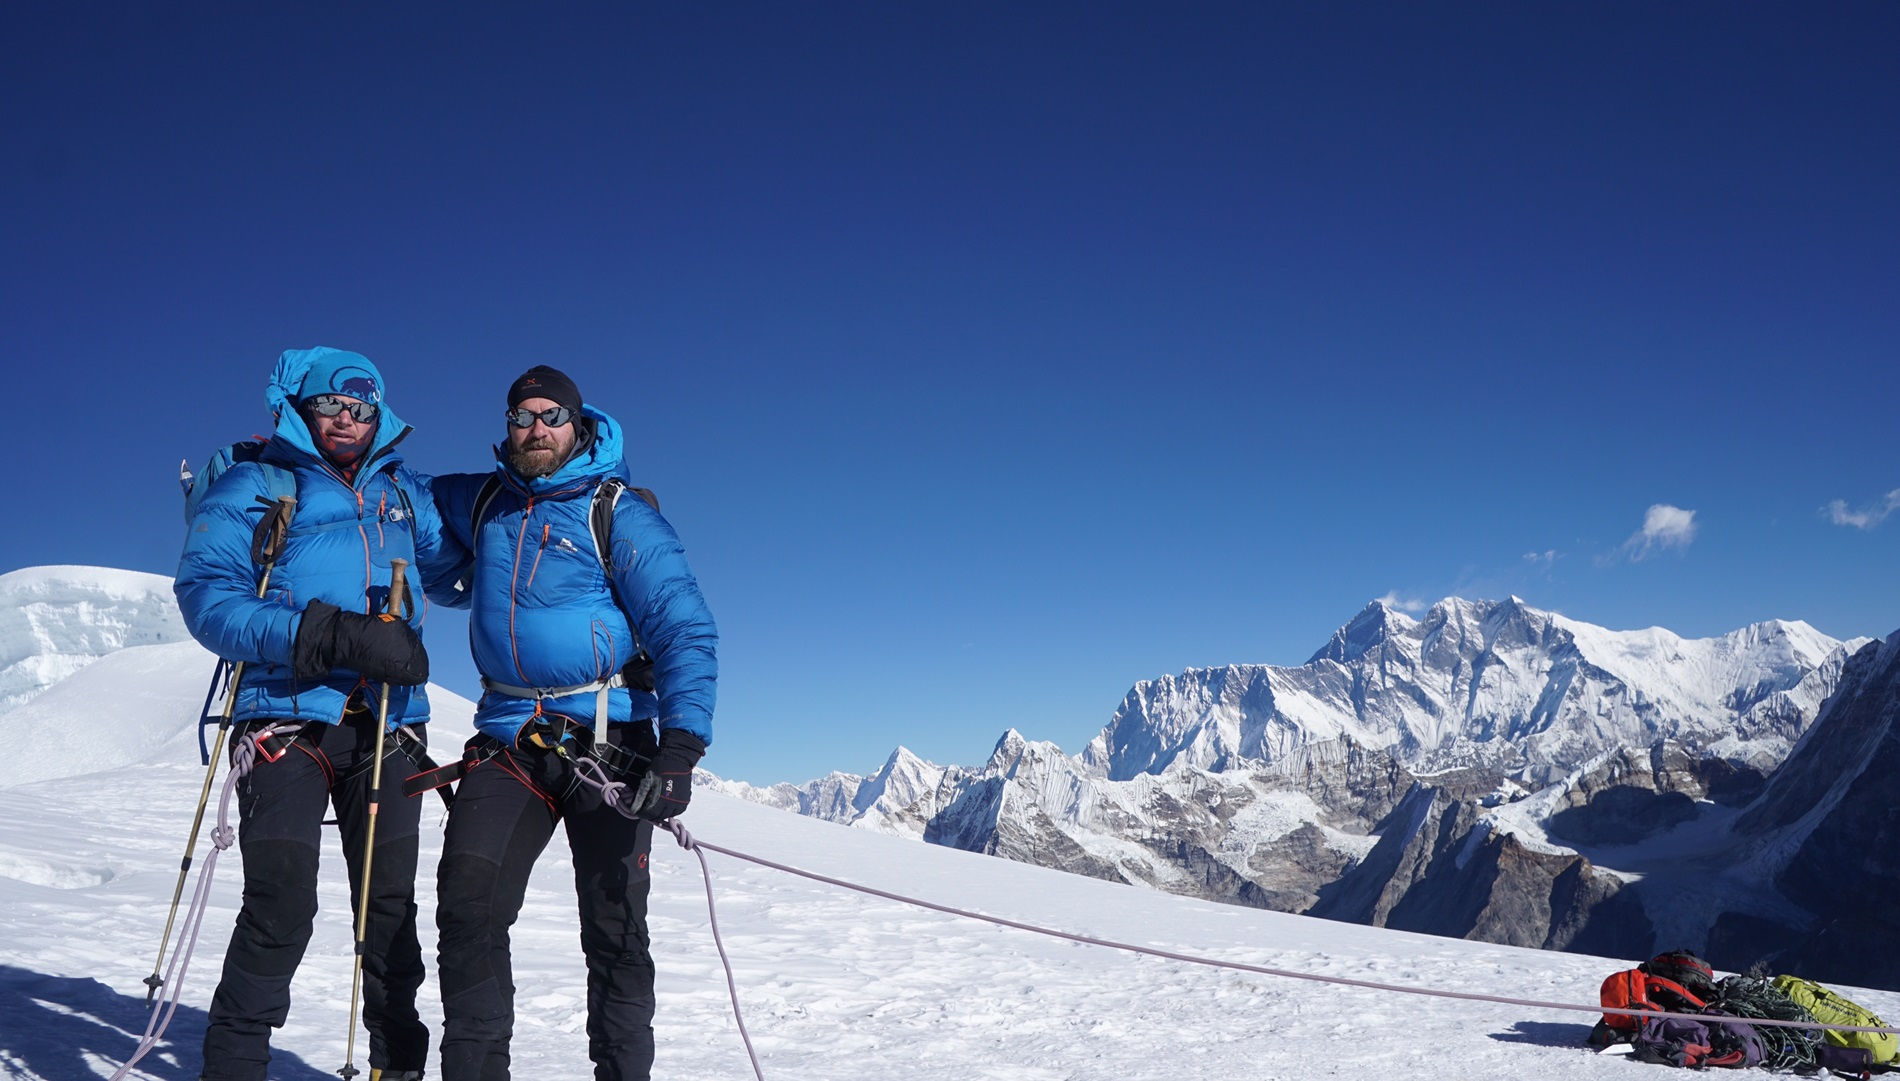 Members of the Mission Himalaya team pose with Mount Everest in the background